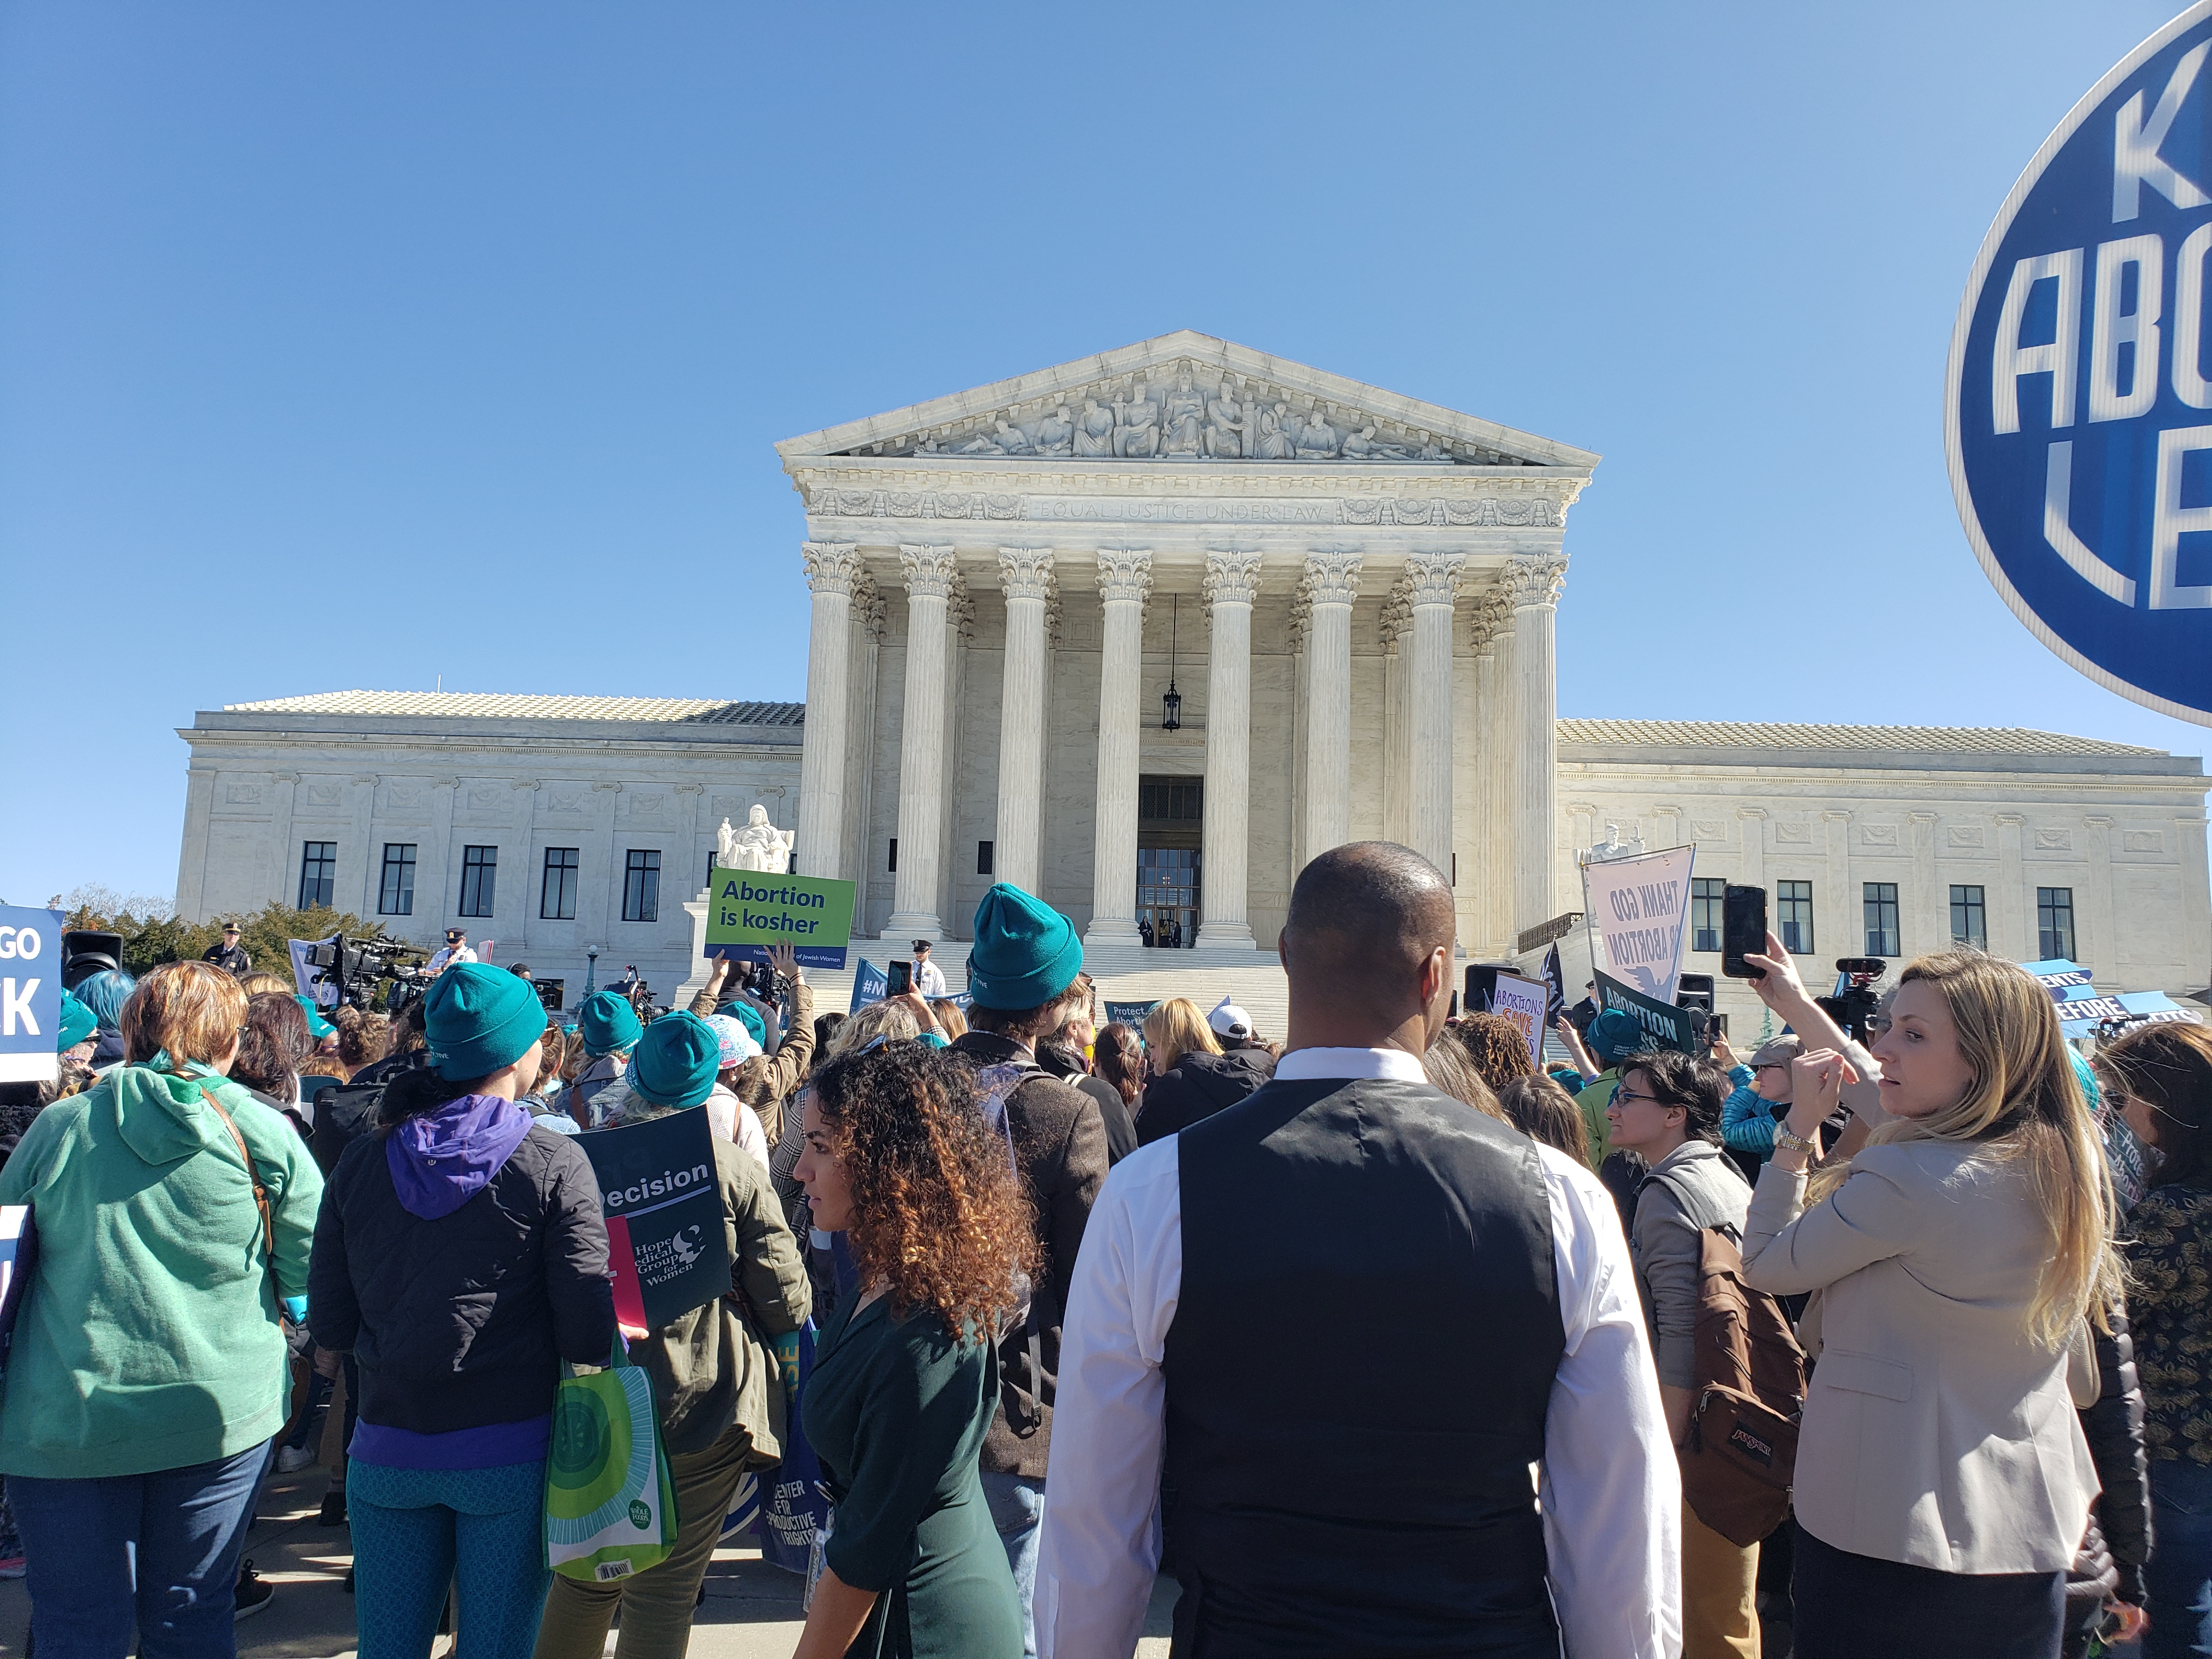 Supreme Court Schedules Hearing On Abortion Case; How Will It Impact A Louisiana Ban?